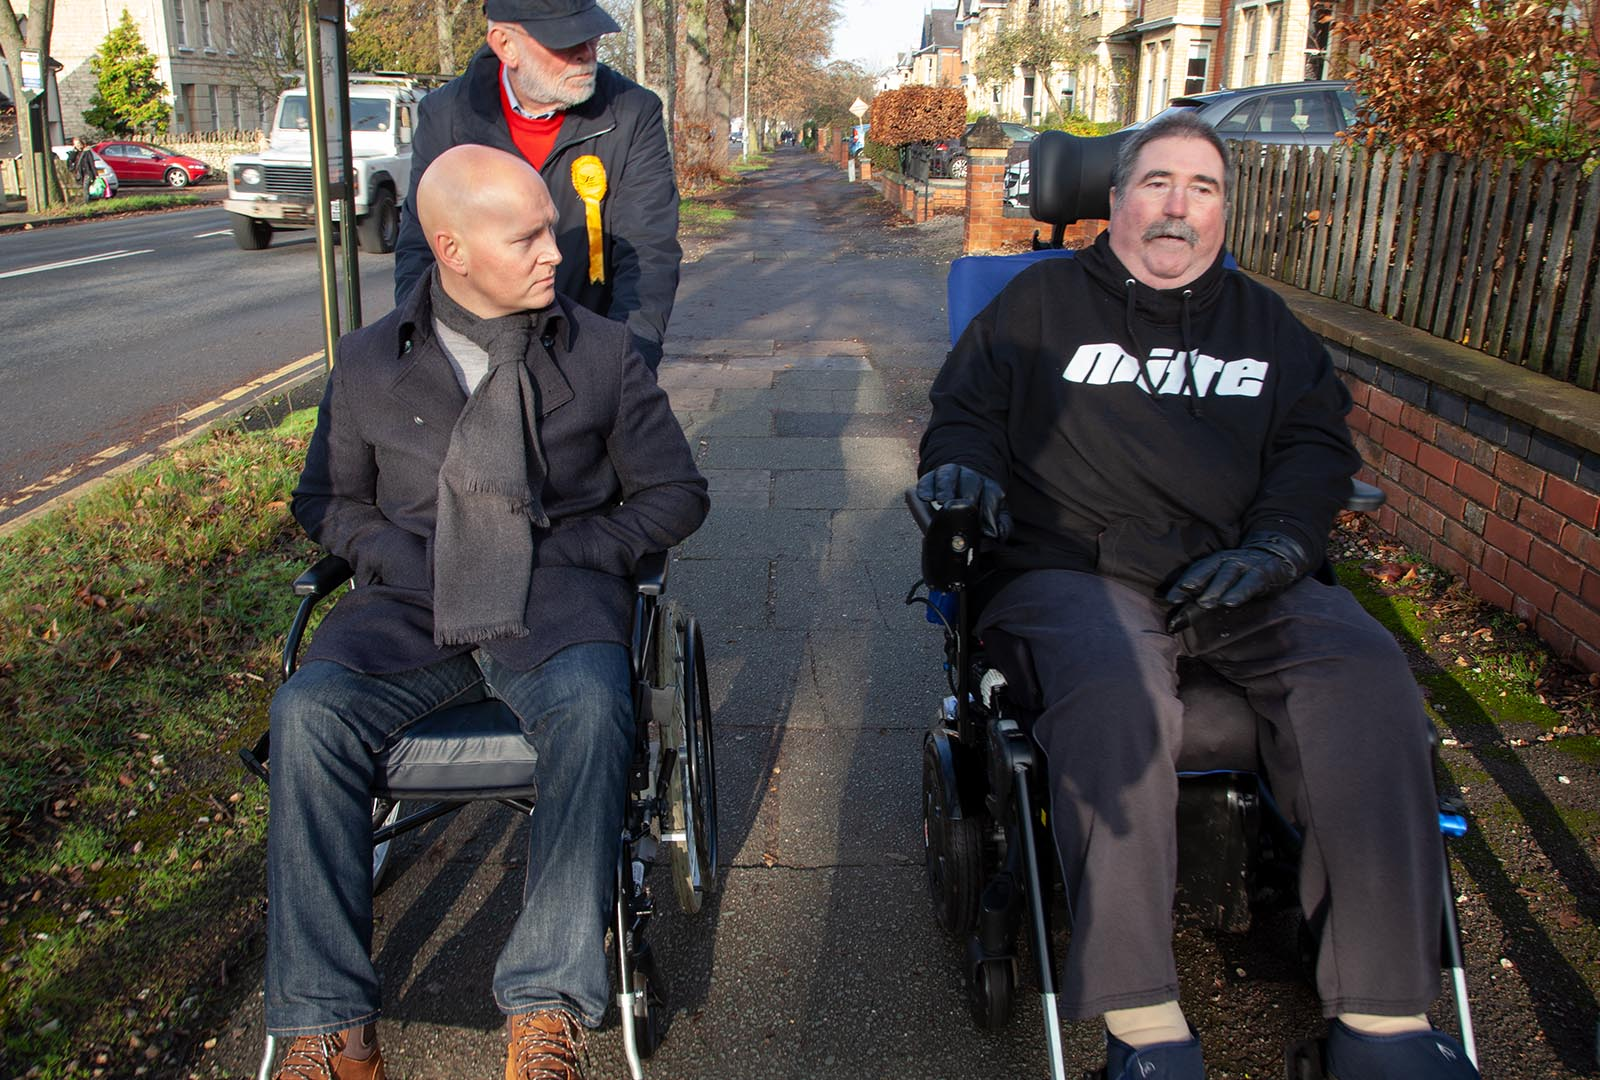 Max joins disability campaigners to learn more about accessibility